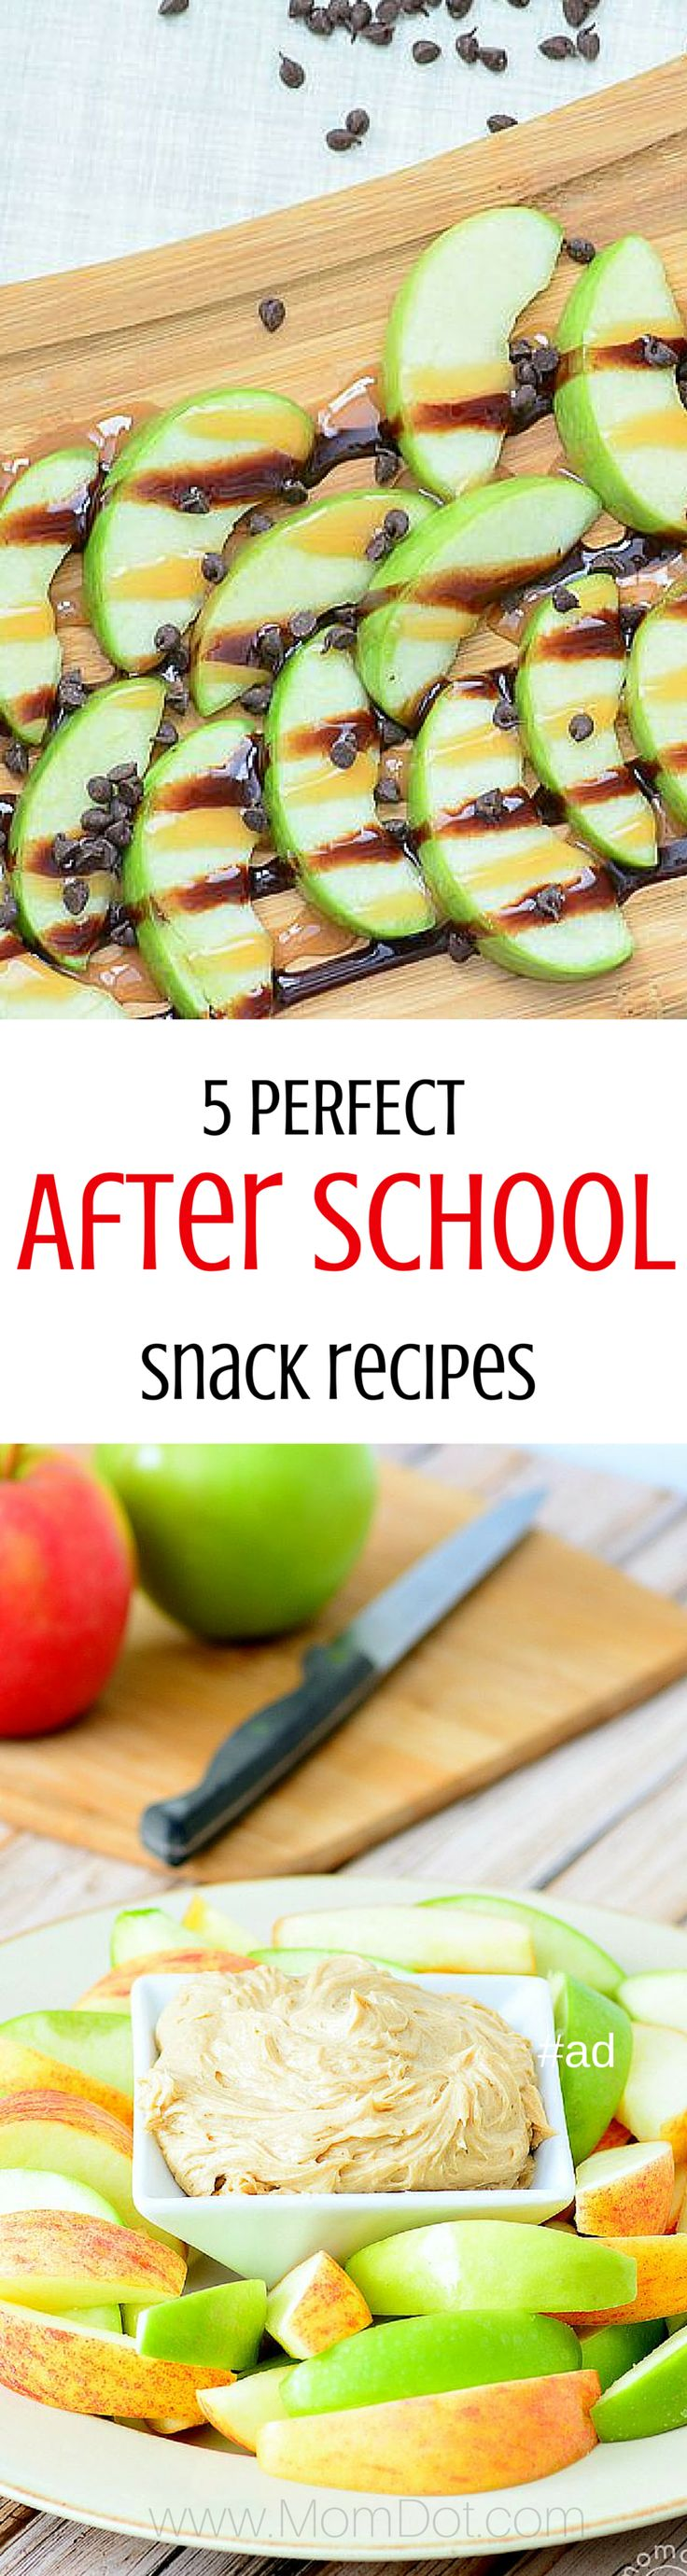 5 Delicious and perfect after school apple recipes - full recipes listed with pictures for each one. Great to curb the before dinner blues!